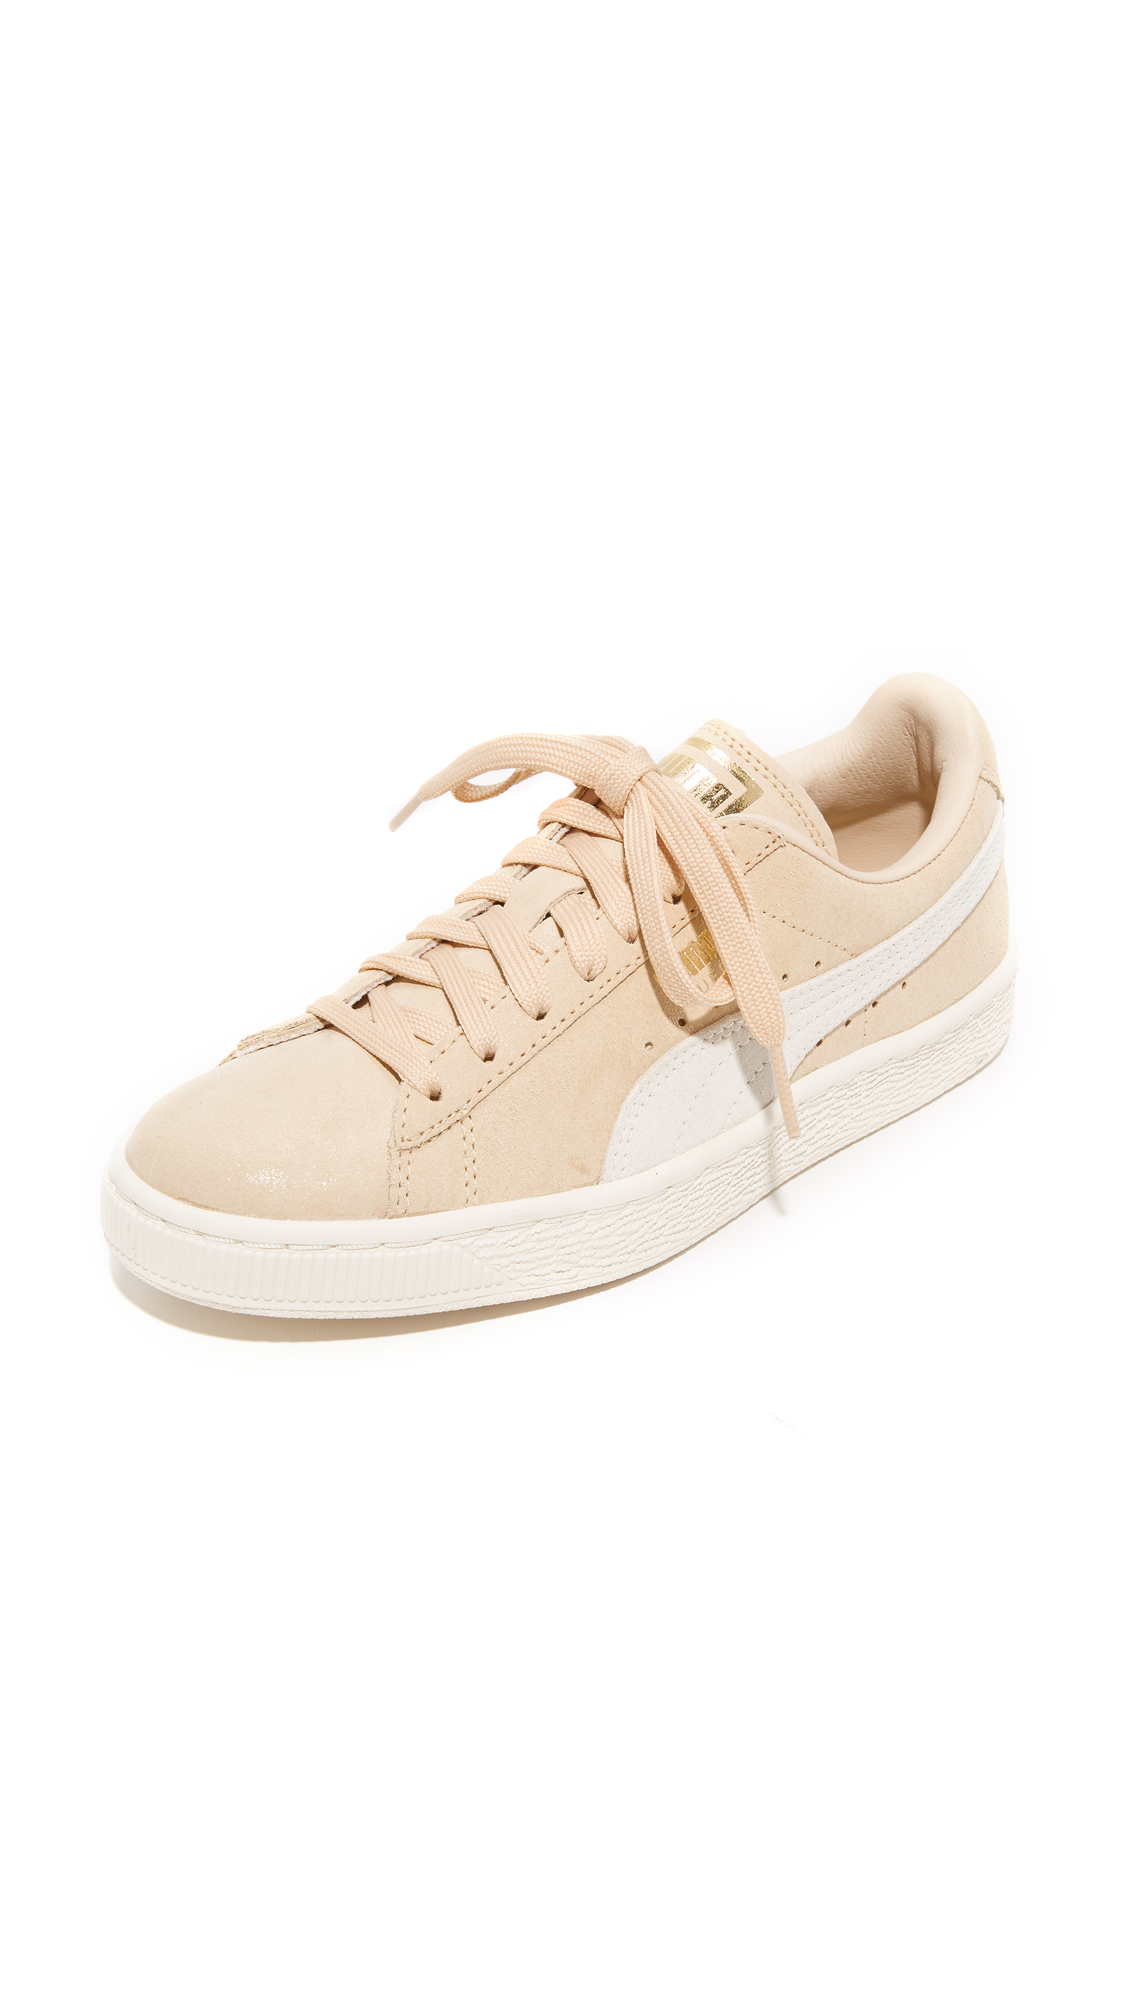 PUMA Suede Classic Shine Sneakers - Natural/Whisper White/Gold